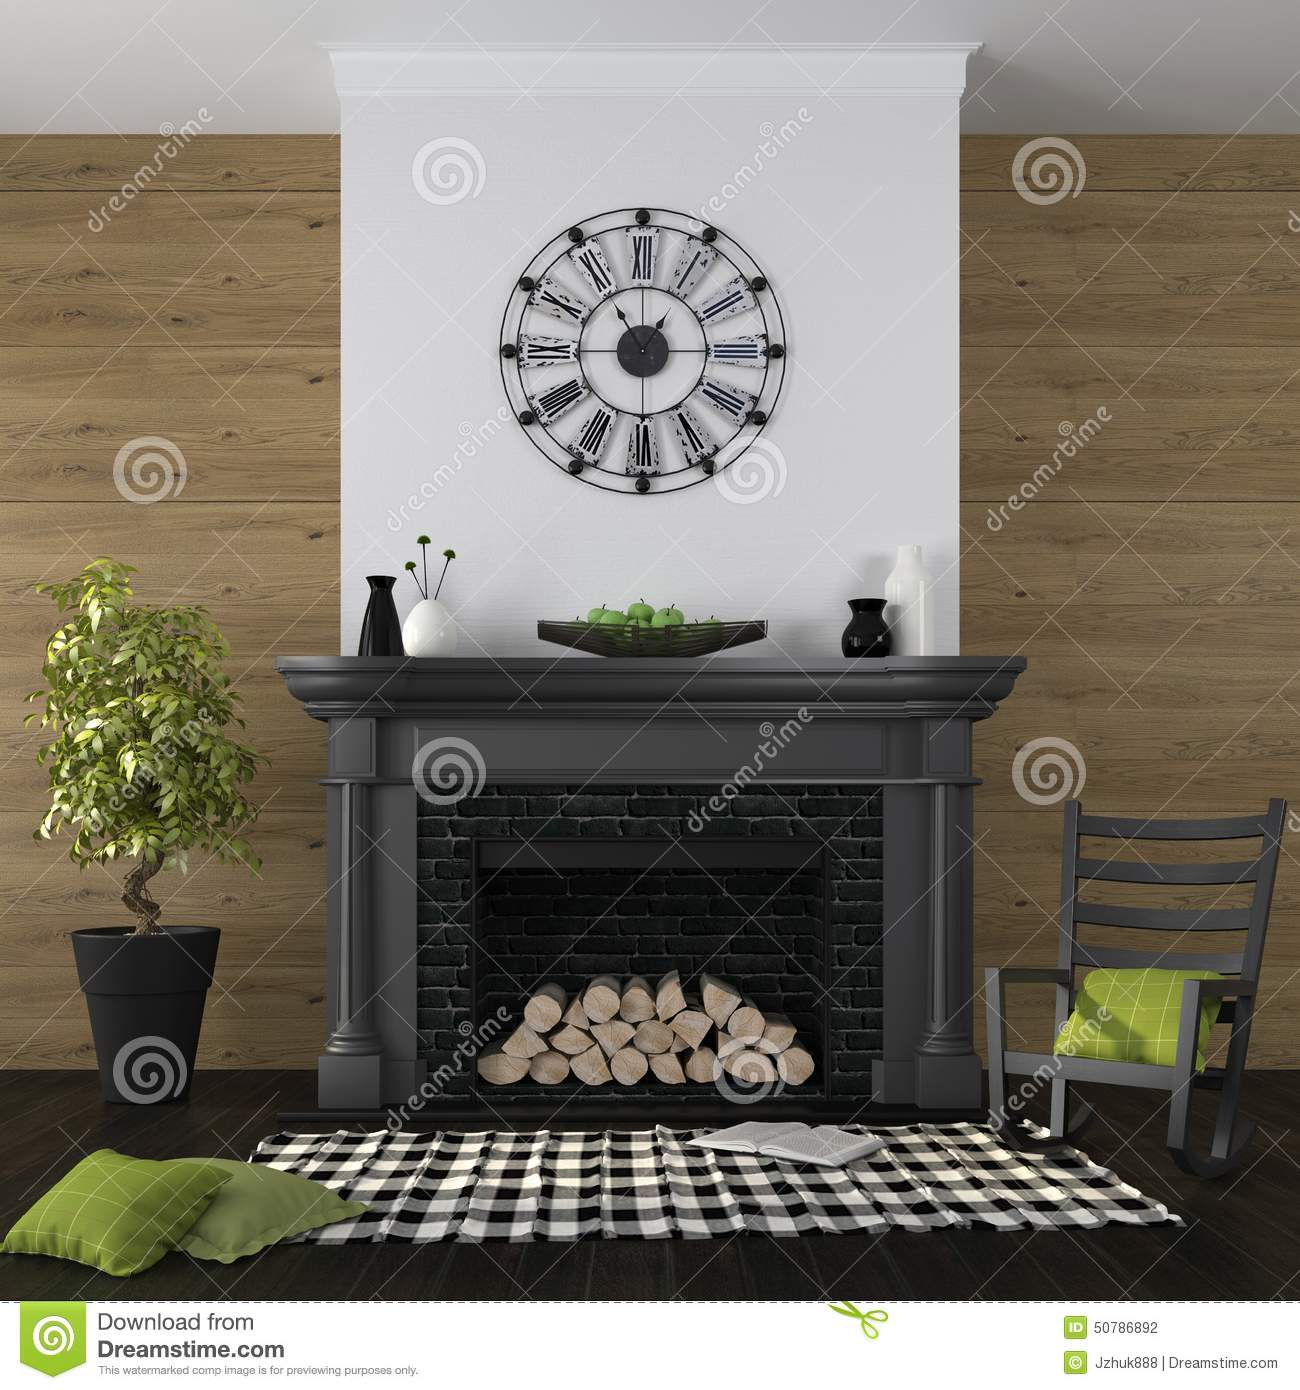 living room with fireplace and black and green decor stock photo